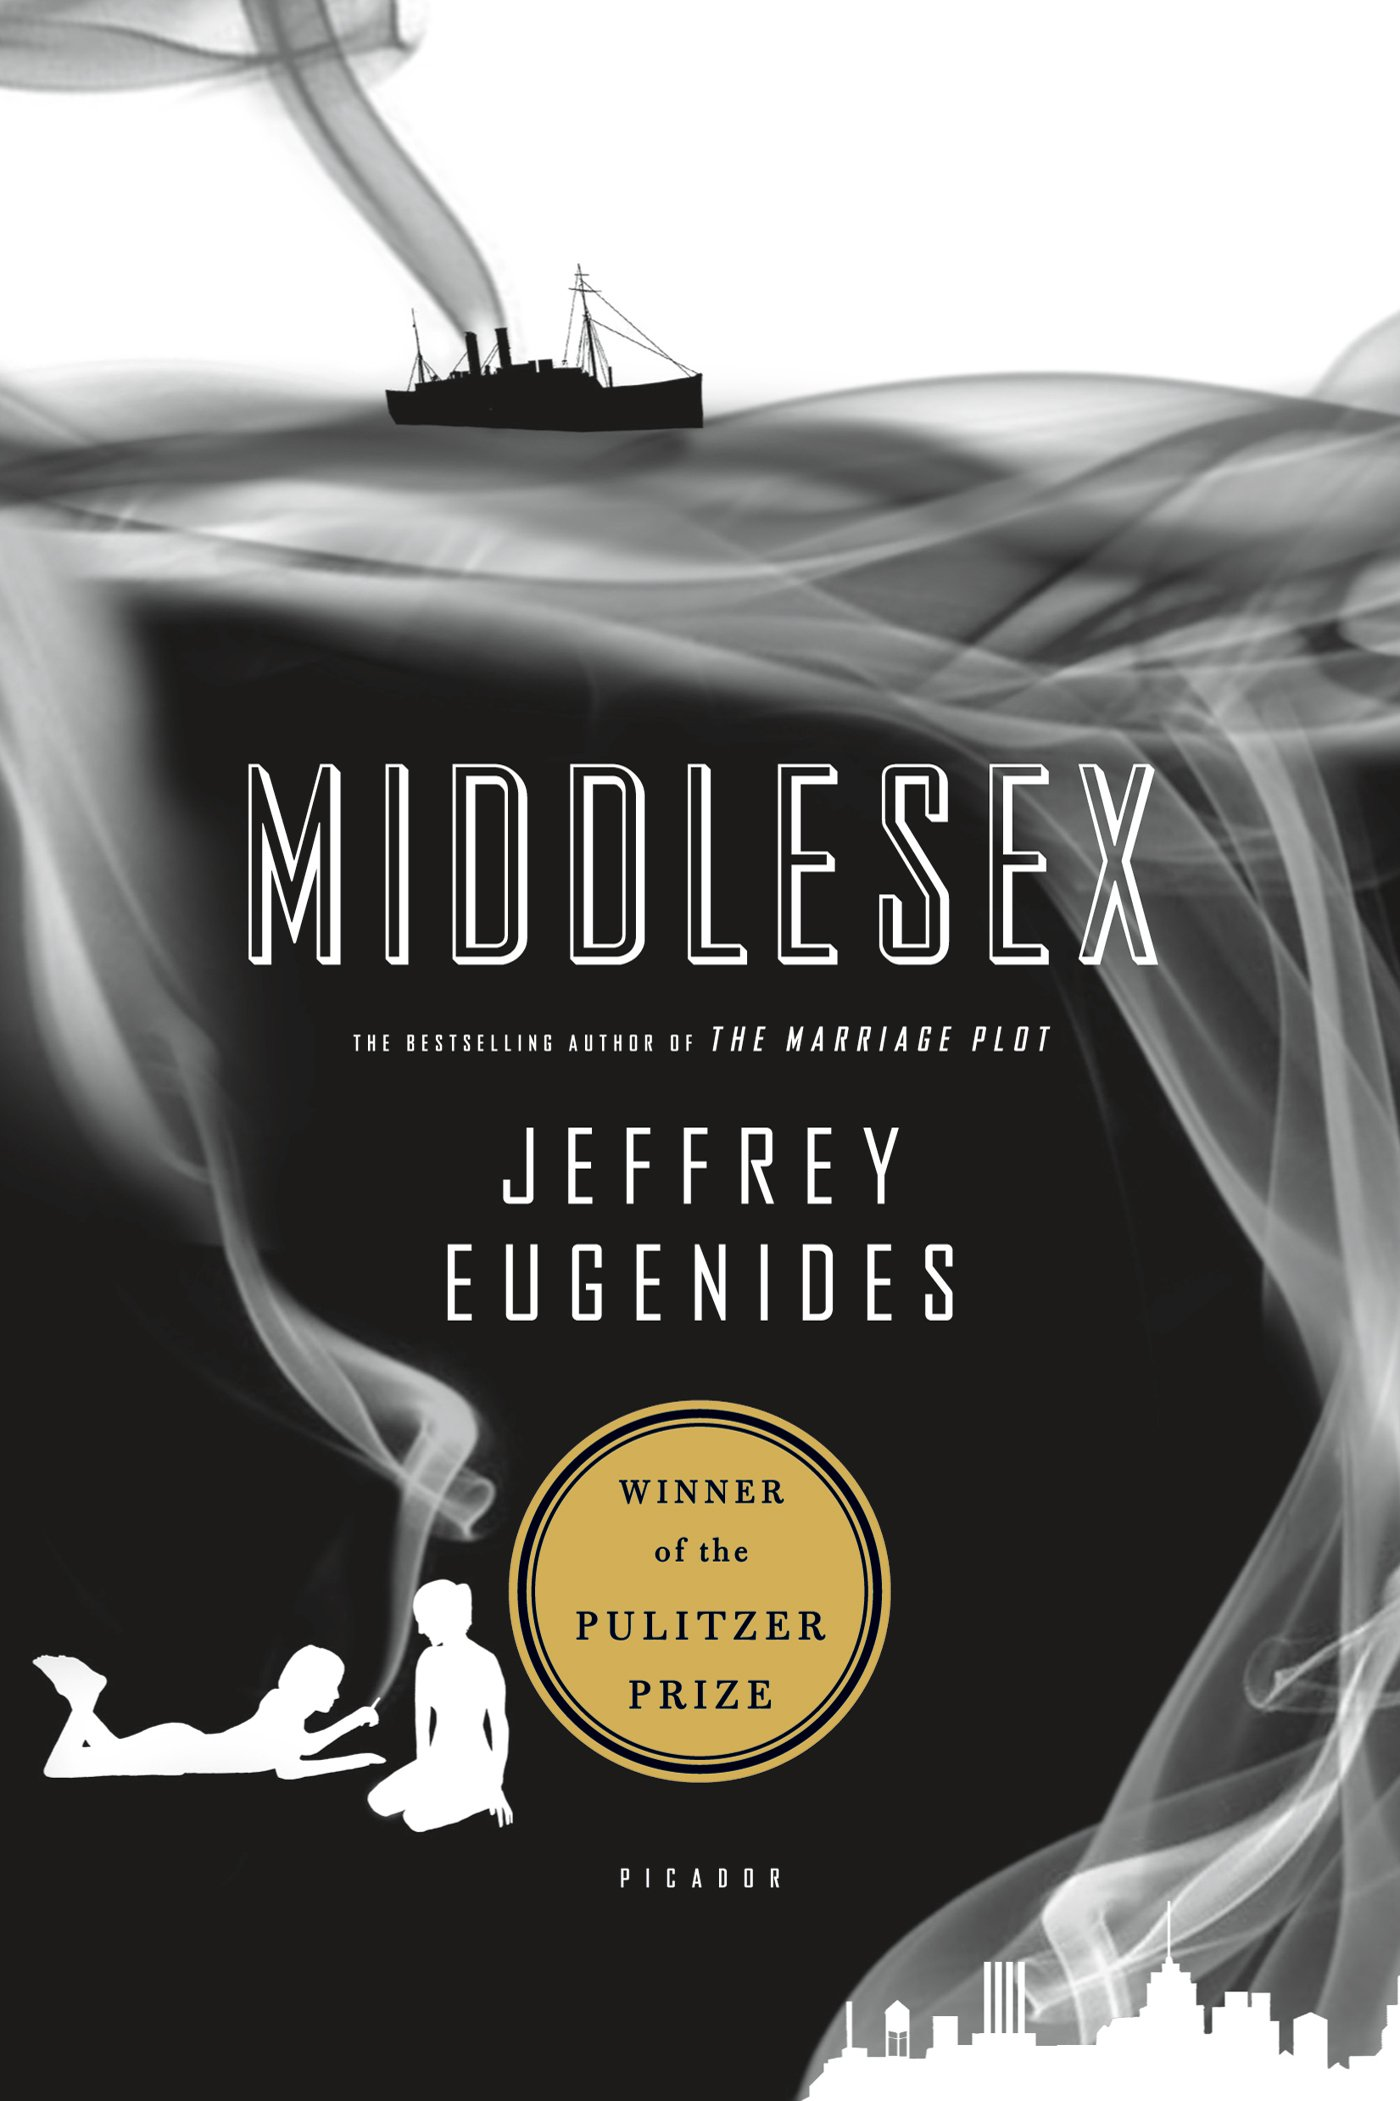 Suki: Middlesex - by Jeffrey Eugenides (Picador)A richly detailed story that follows the life of an intersex man and three generations of his Greek-American family.